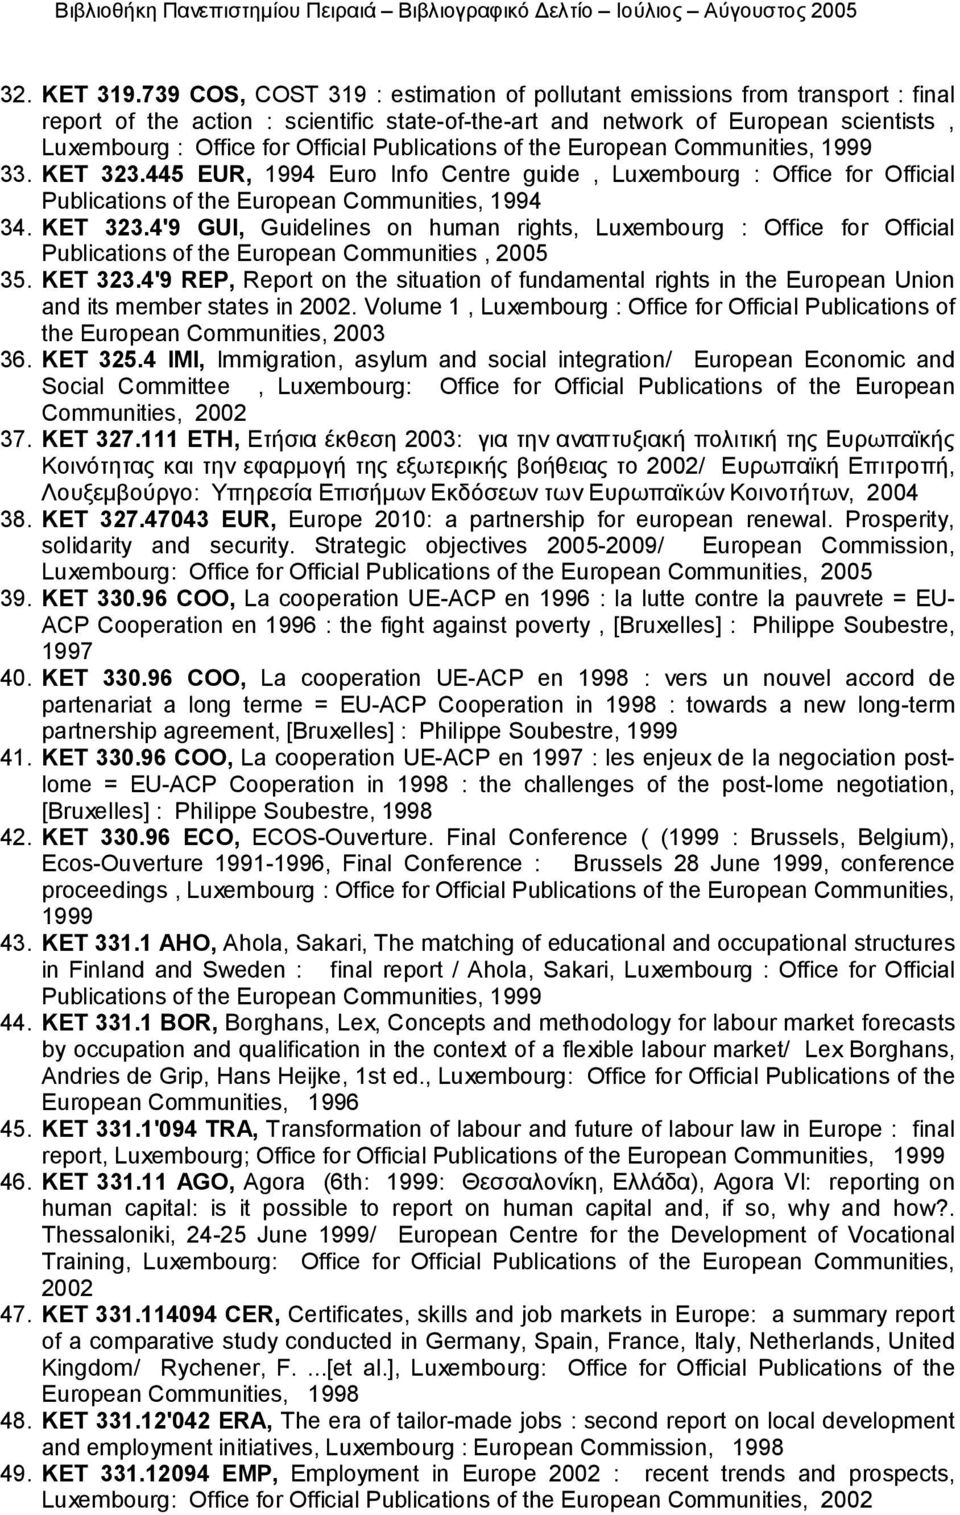 Publications of the European Communities, 1999 33. KET 323.445 EUR, 1994 Euro Info Centre guide, Luxembourg : Office for Official Publications of the European Communities, 1994 34. KET 323.4'9 GUI, Guidelines on human rights, Luxembourg : Office for Official Publications of the European Communities, 2005 35.